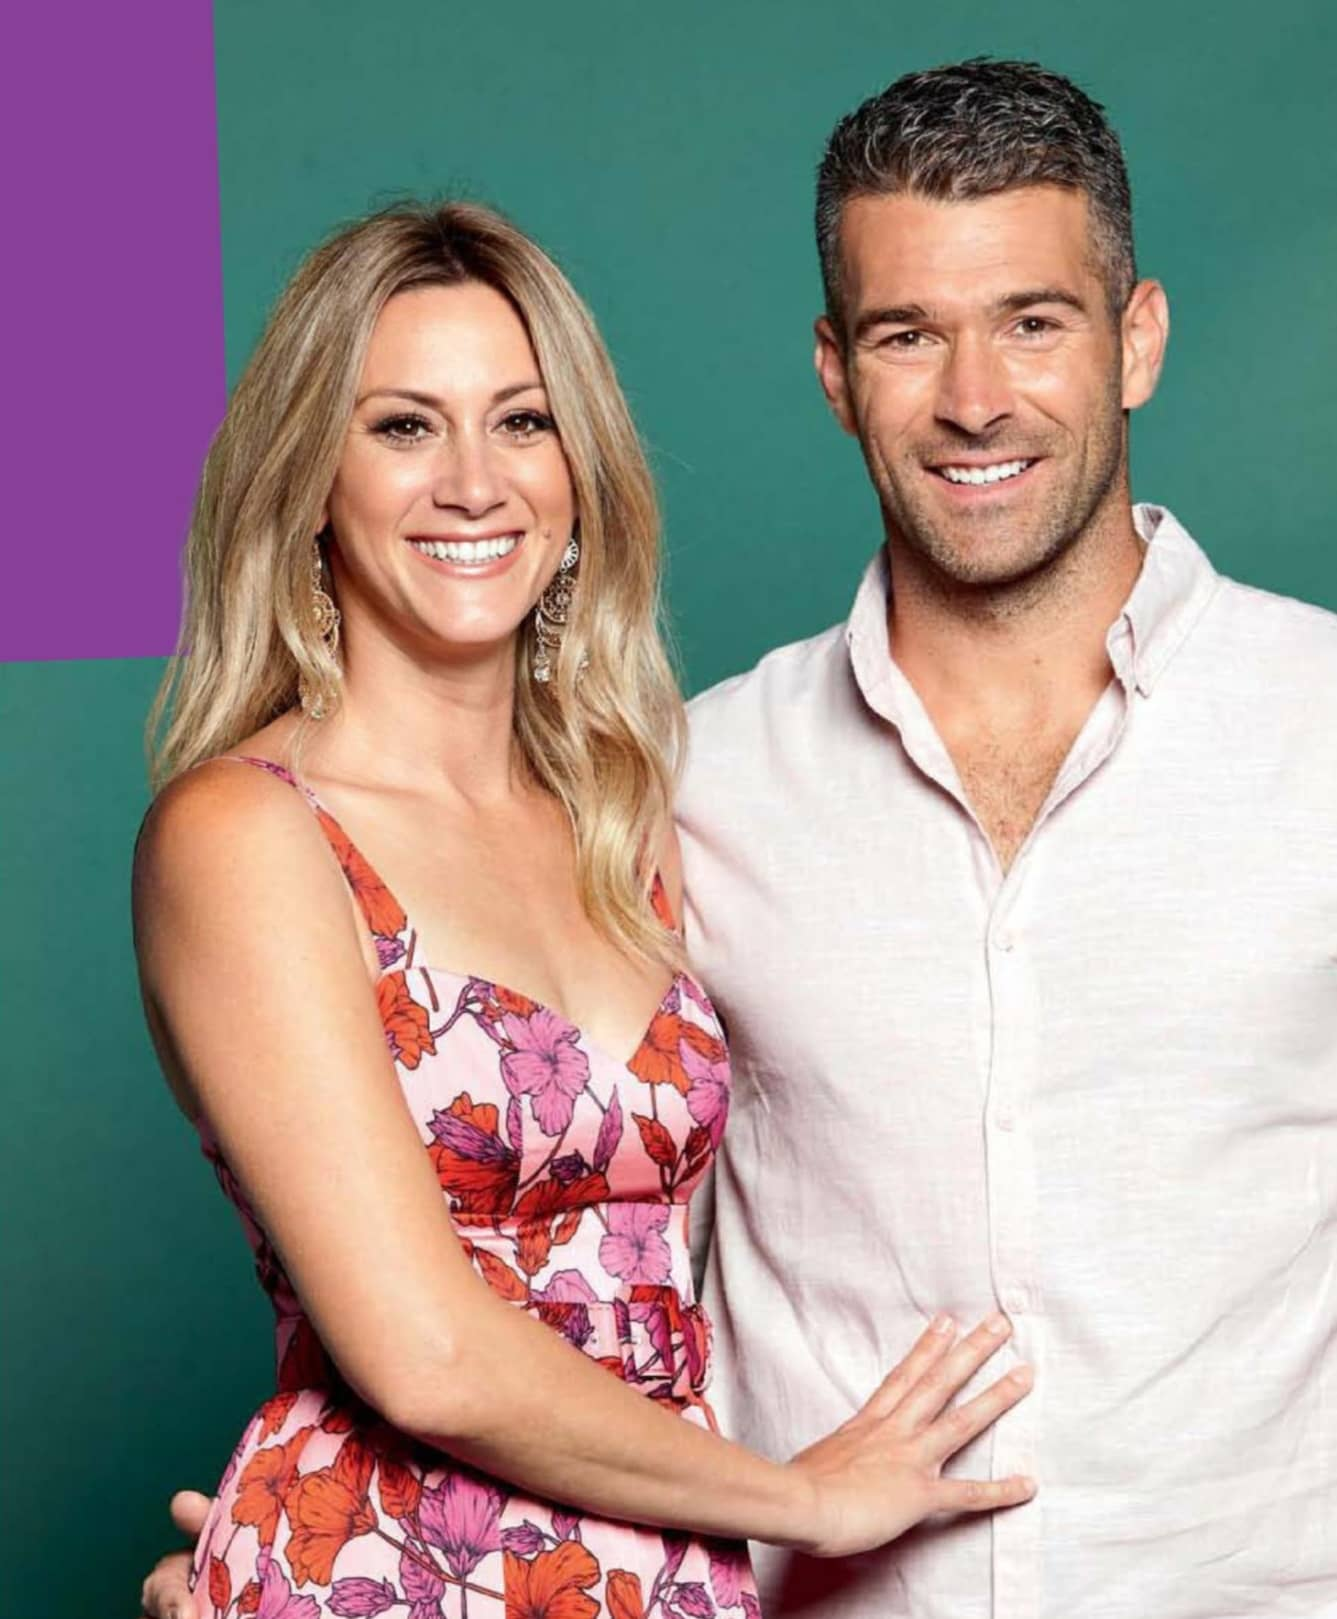 TANYA & DAVE: 'BEING AWAY FROM THE KIDS WAS HARD'